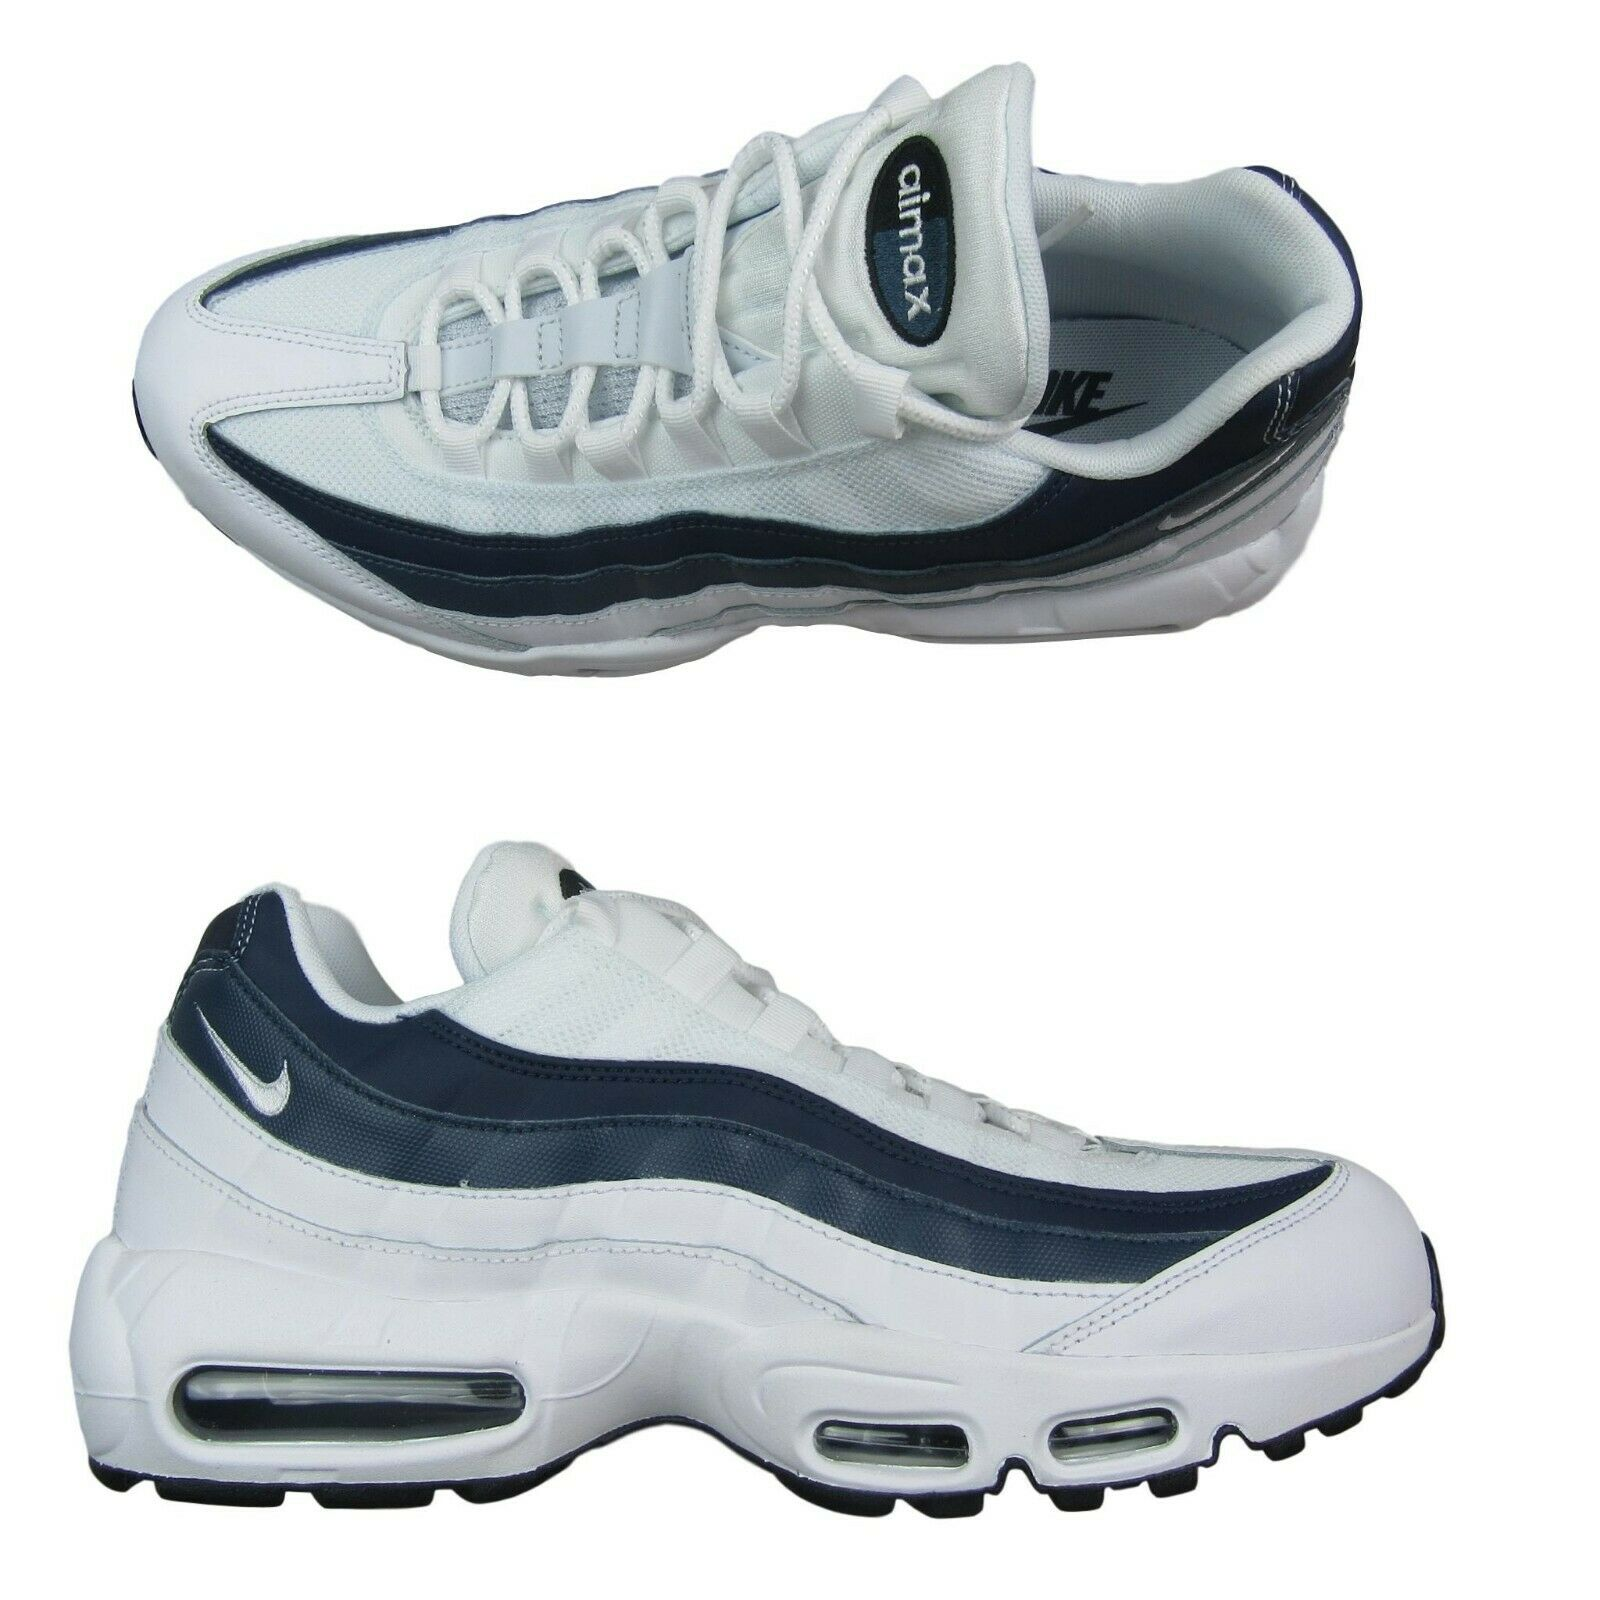 f9f79a3298 Nike Air Max 95 Essential Shoes Size 10.5 Mens White Navy Blue ...